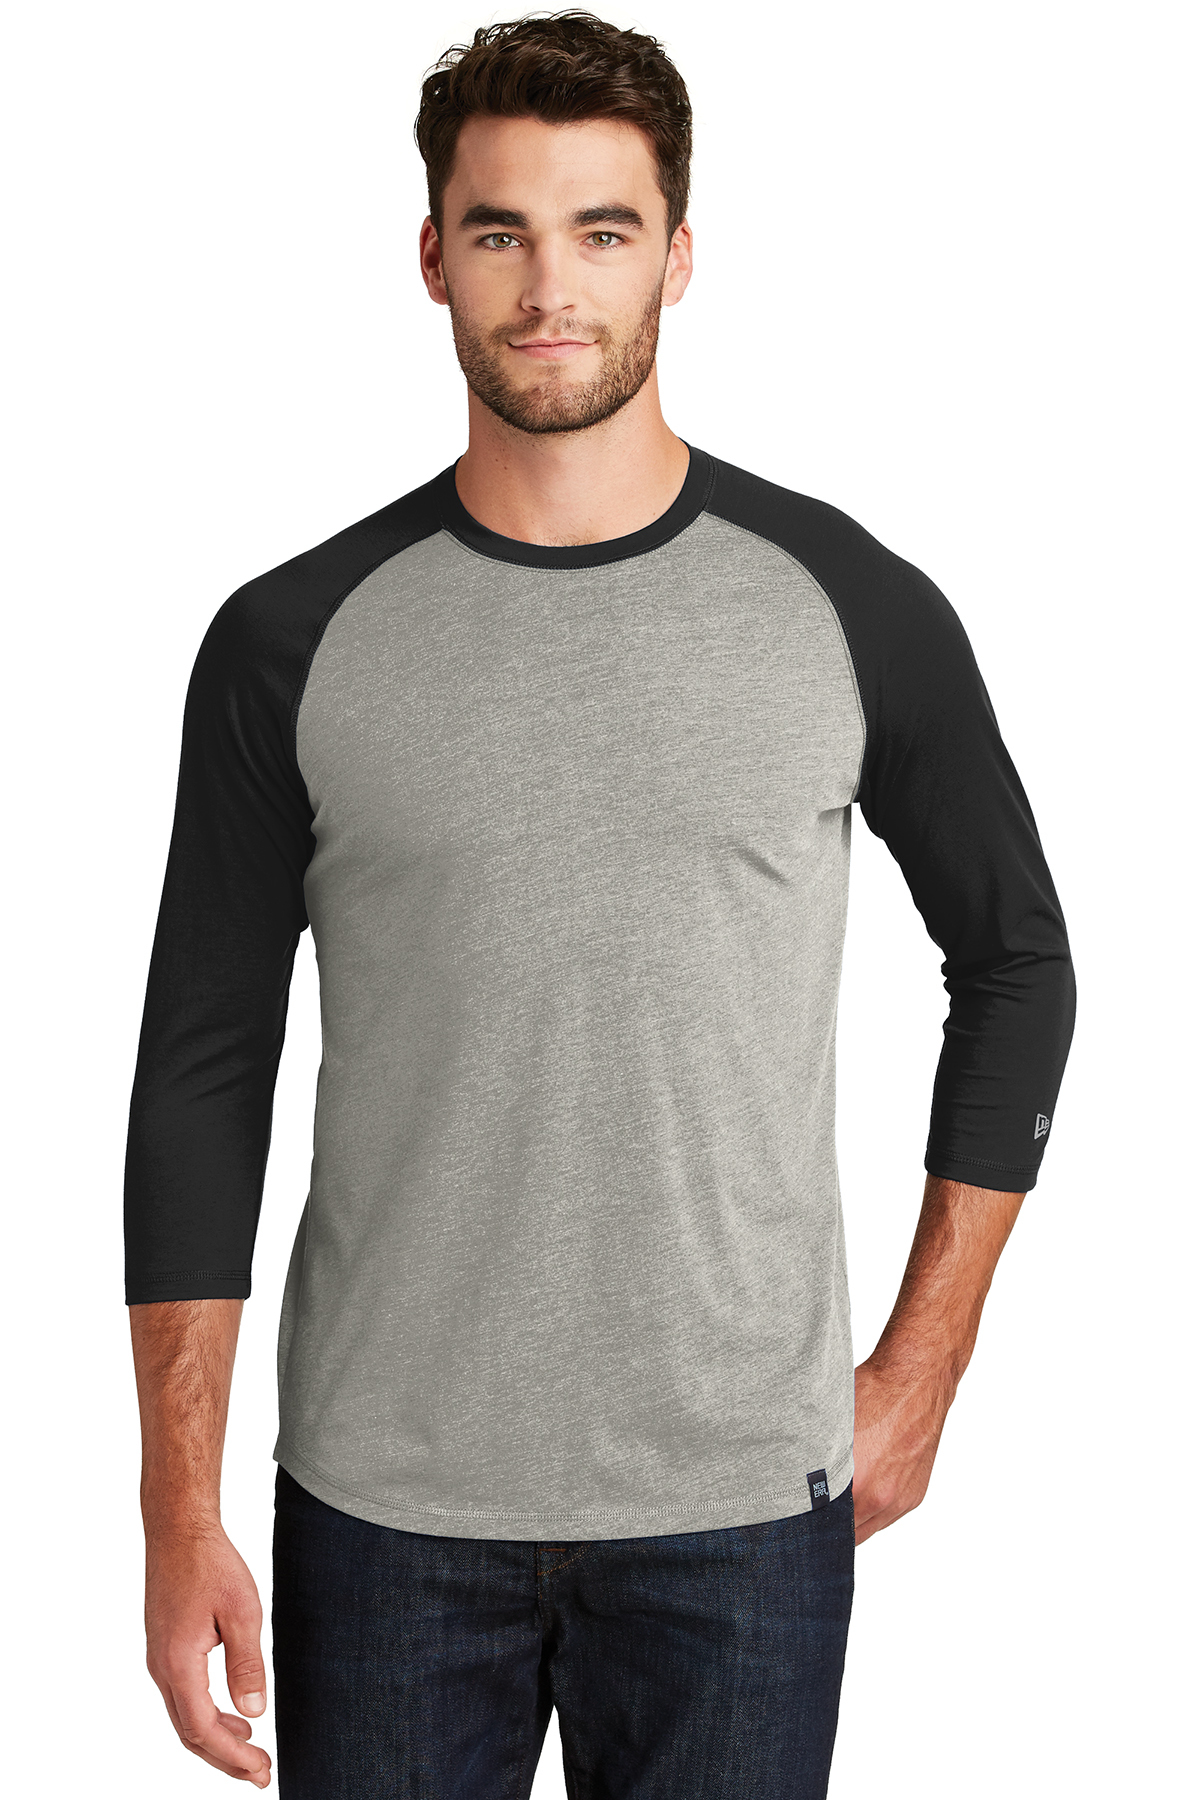 New Era NEA104 - Men's Heritage Blend 3/4 Sleeve Baseball Raglan Tee